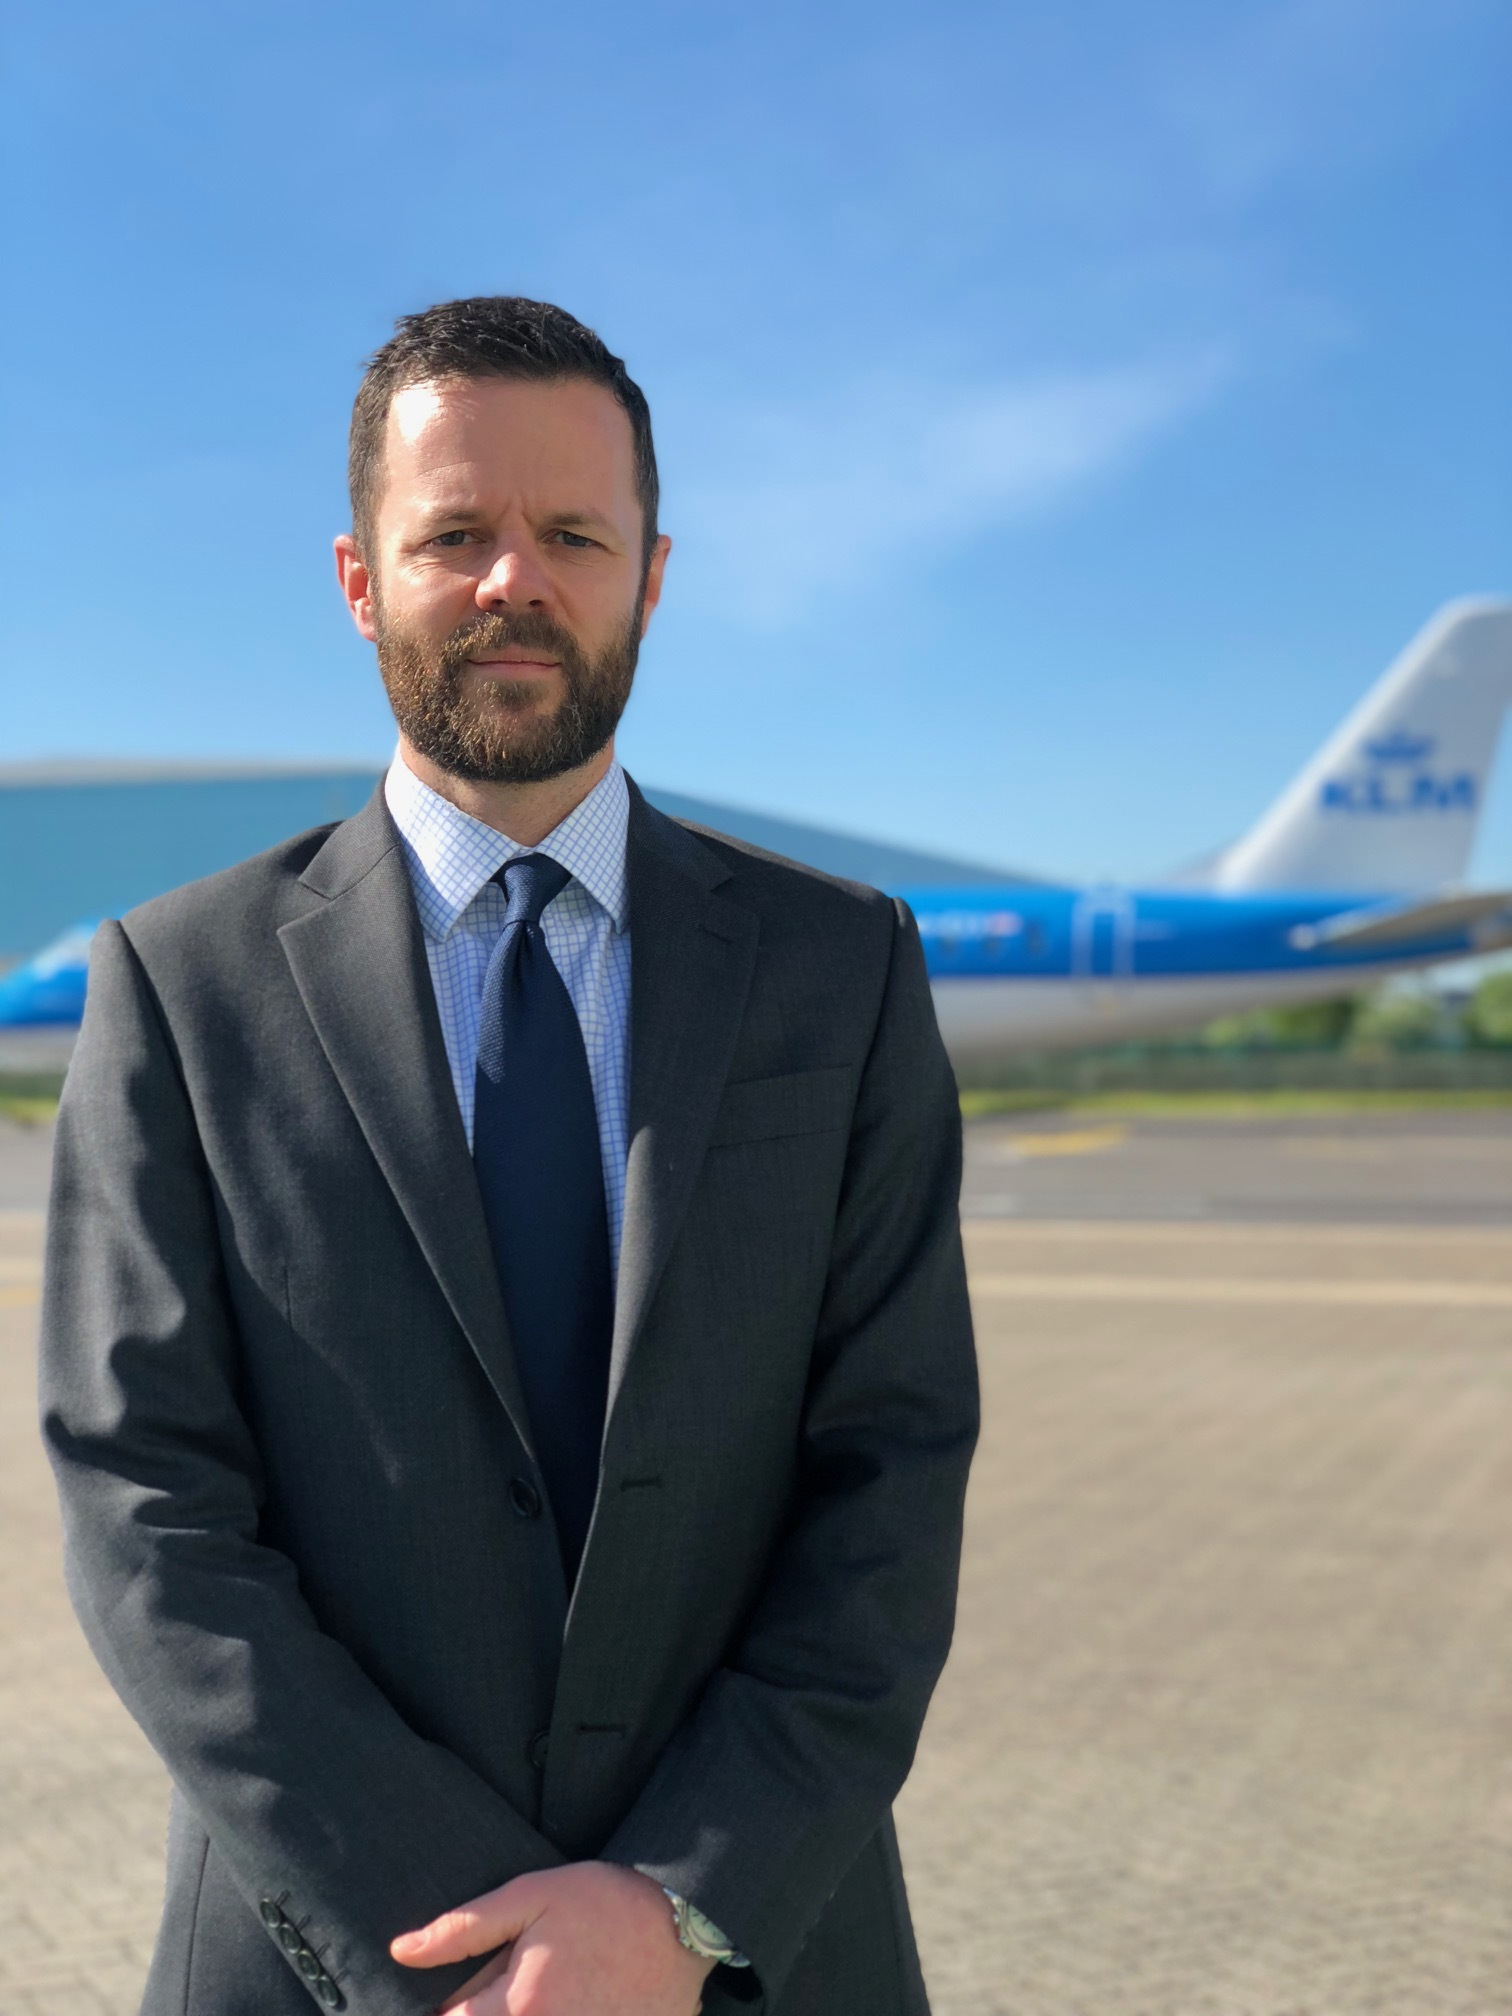 Neil Garwood, the new managing director of Southampton Airport.